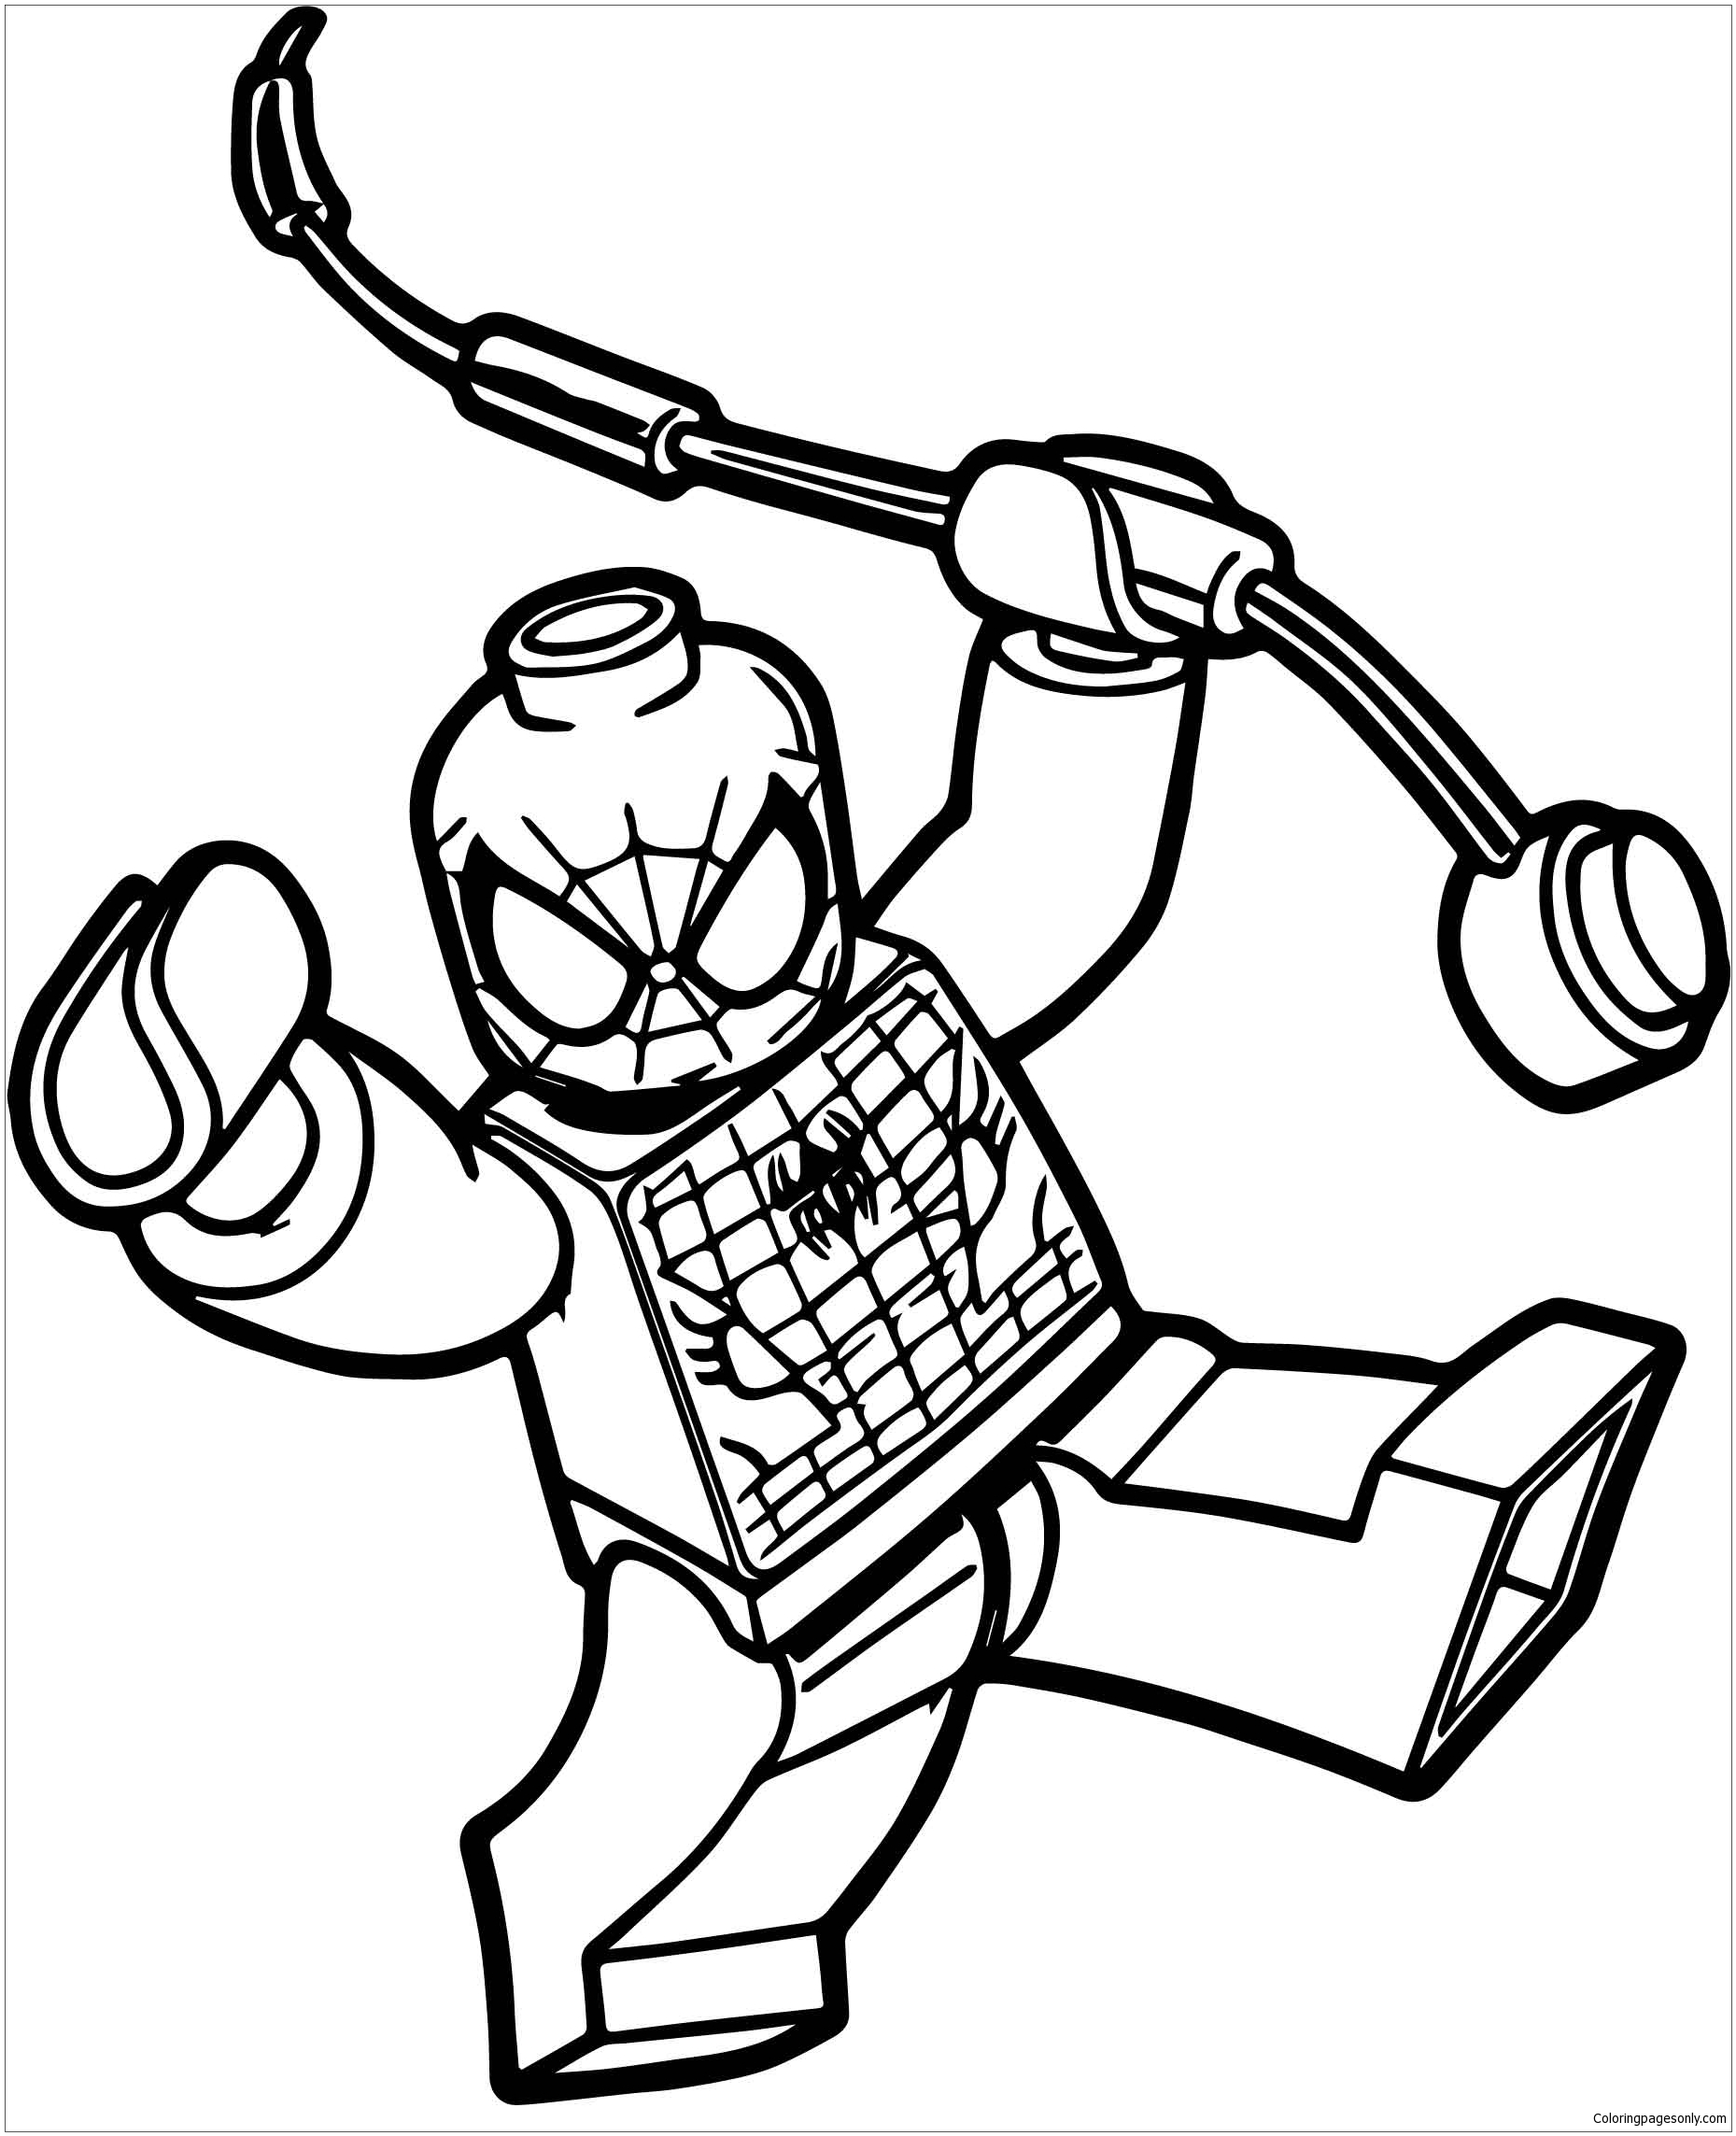 Box Spiderman Lego Spider Man Coloring Pages Spiderman Coloring Pages Free Printable Coloring Pages Online